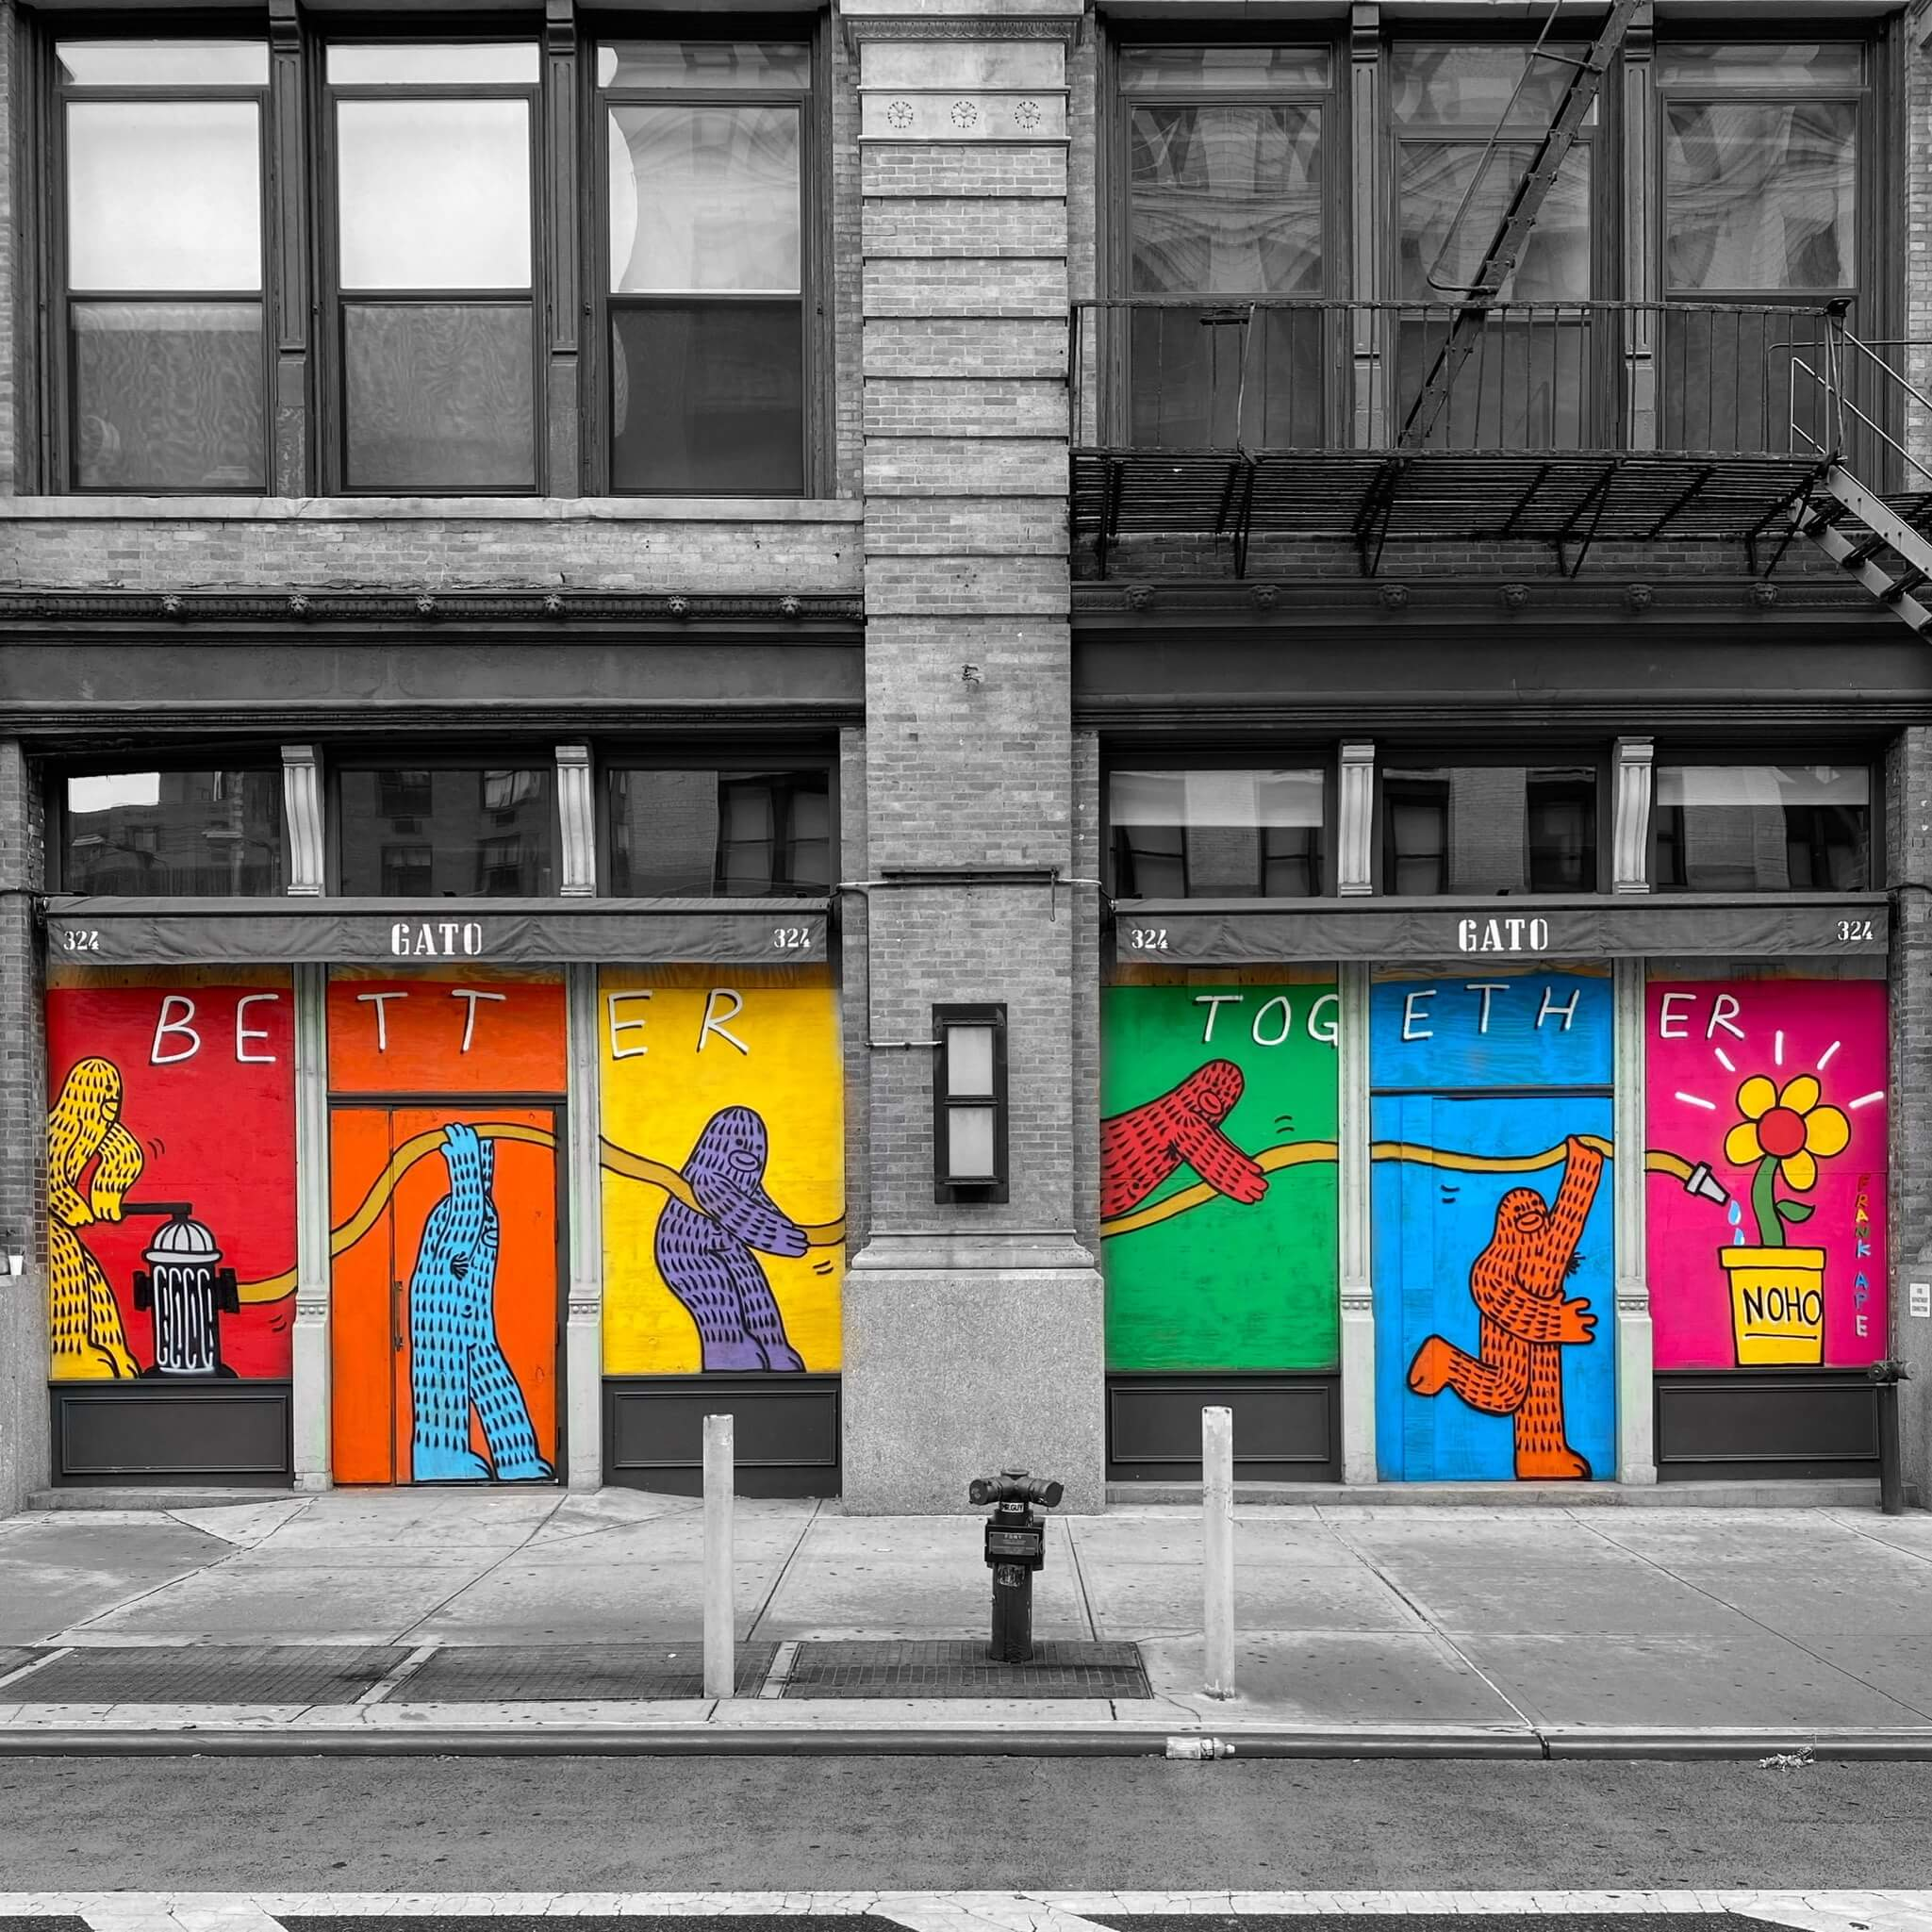 Colourful Street Art Photography by Sarah Sansom - Better Together